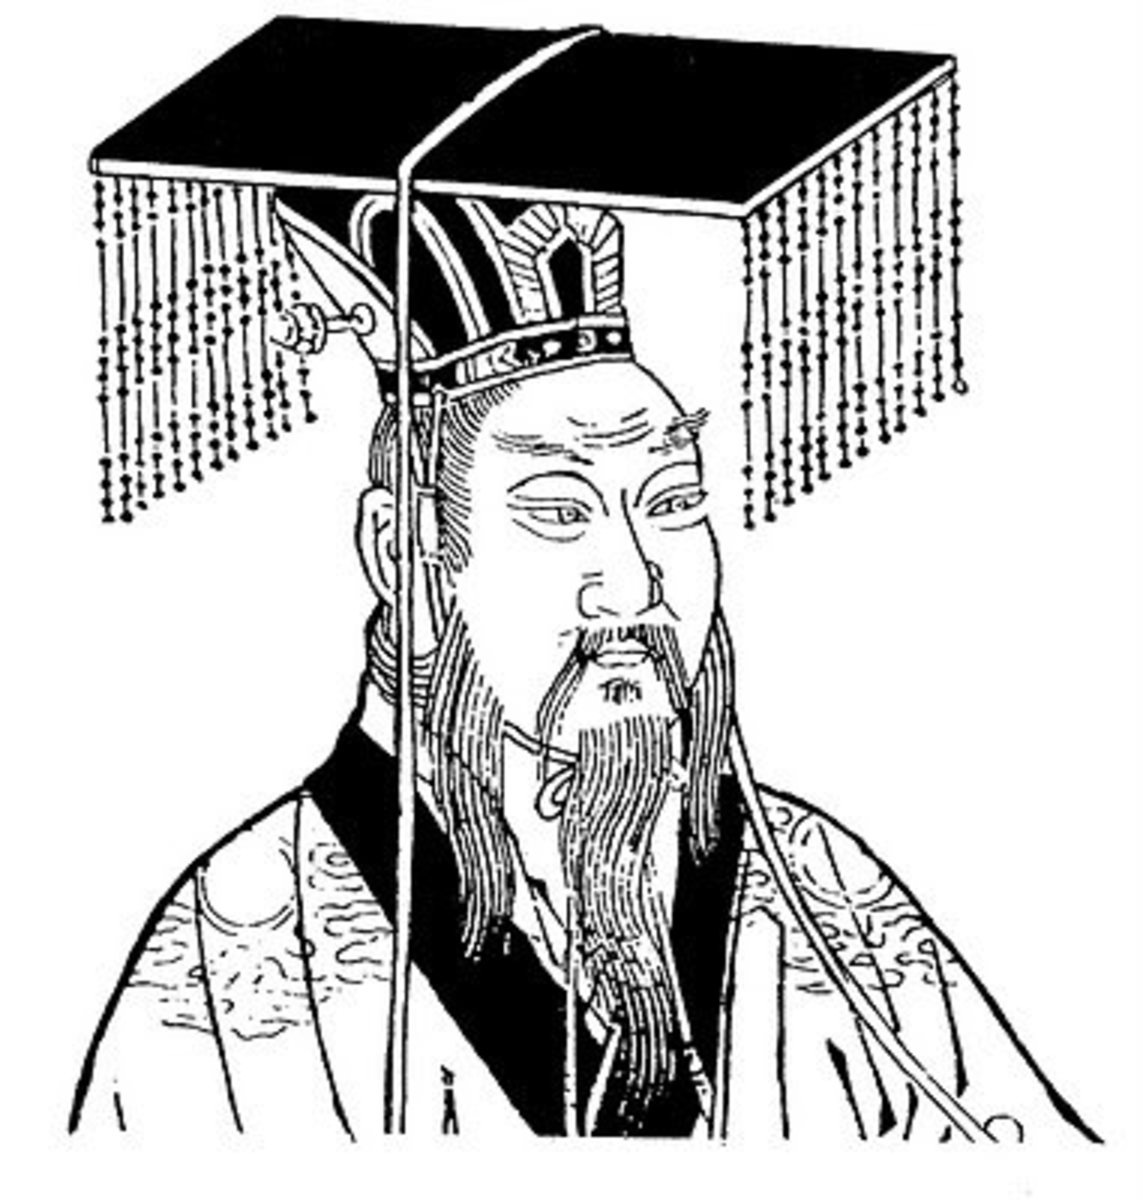 Sui Wen Ti or Yang Chien, An Ancient Emperor Of China, and Why He Matters To Us Today